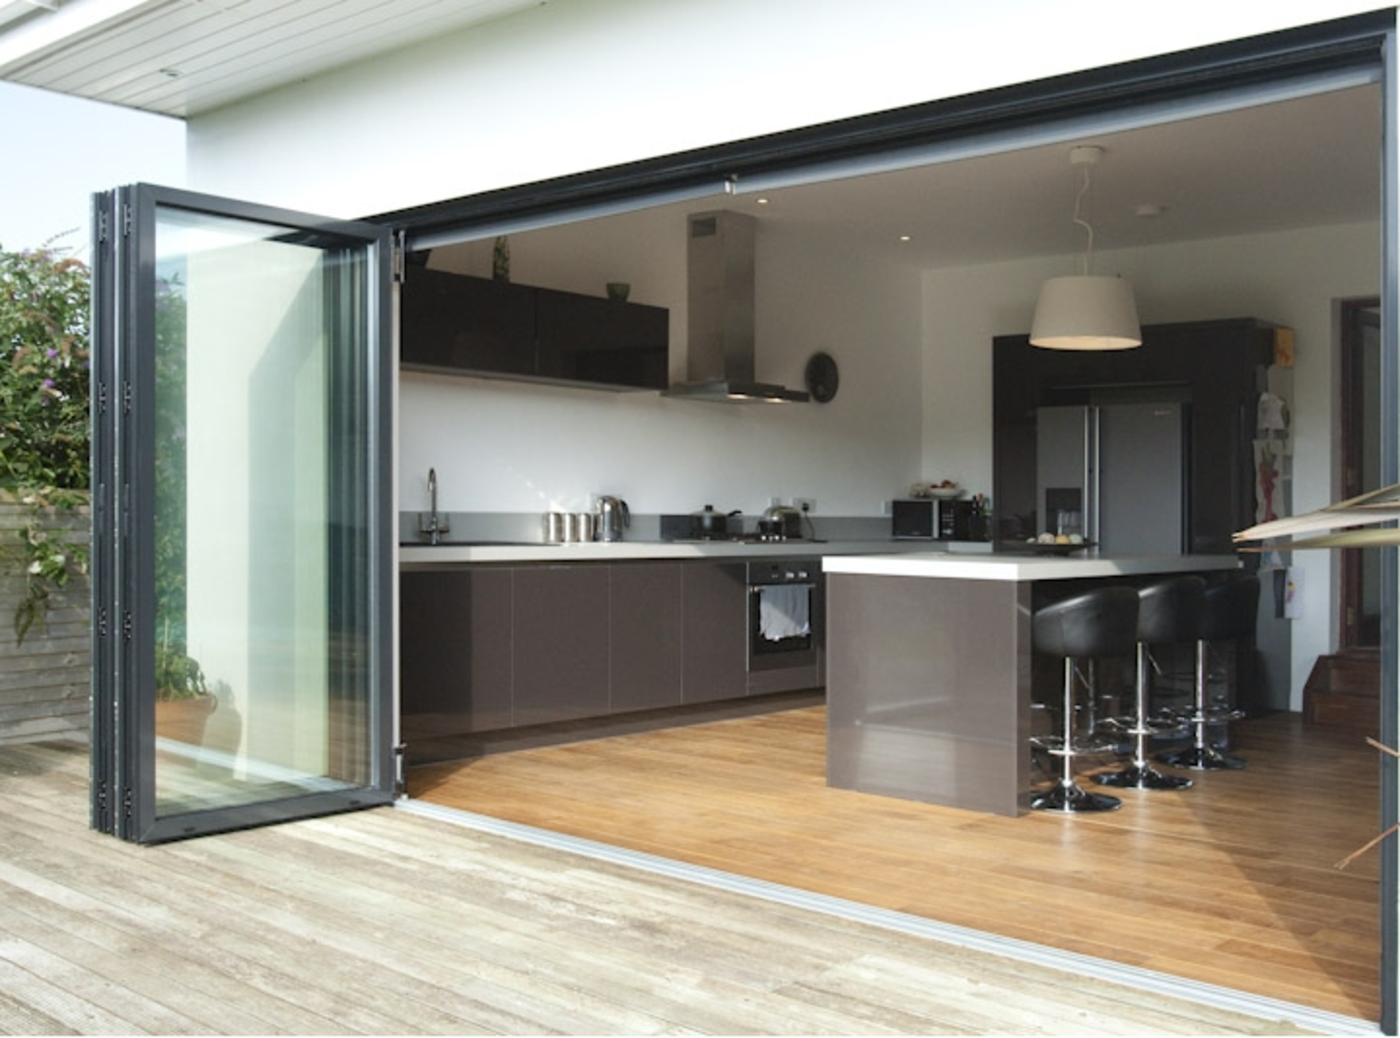 70mm Thermally Broken Aluminium Folding Sliding Doors